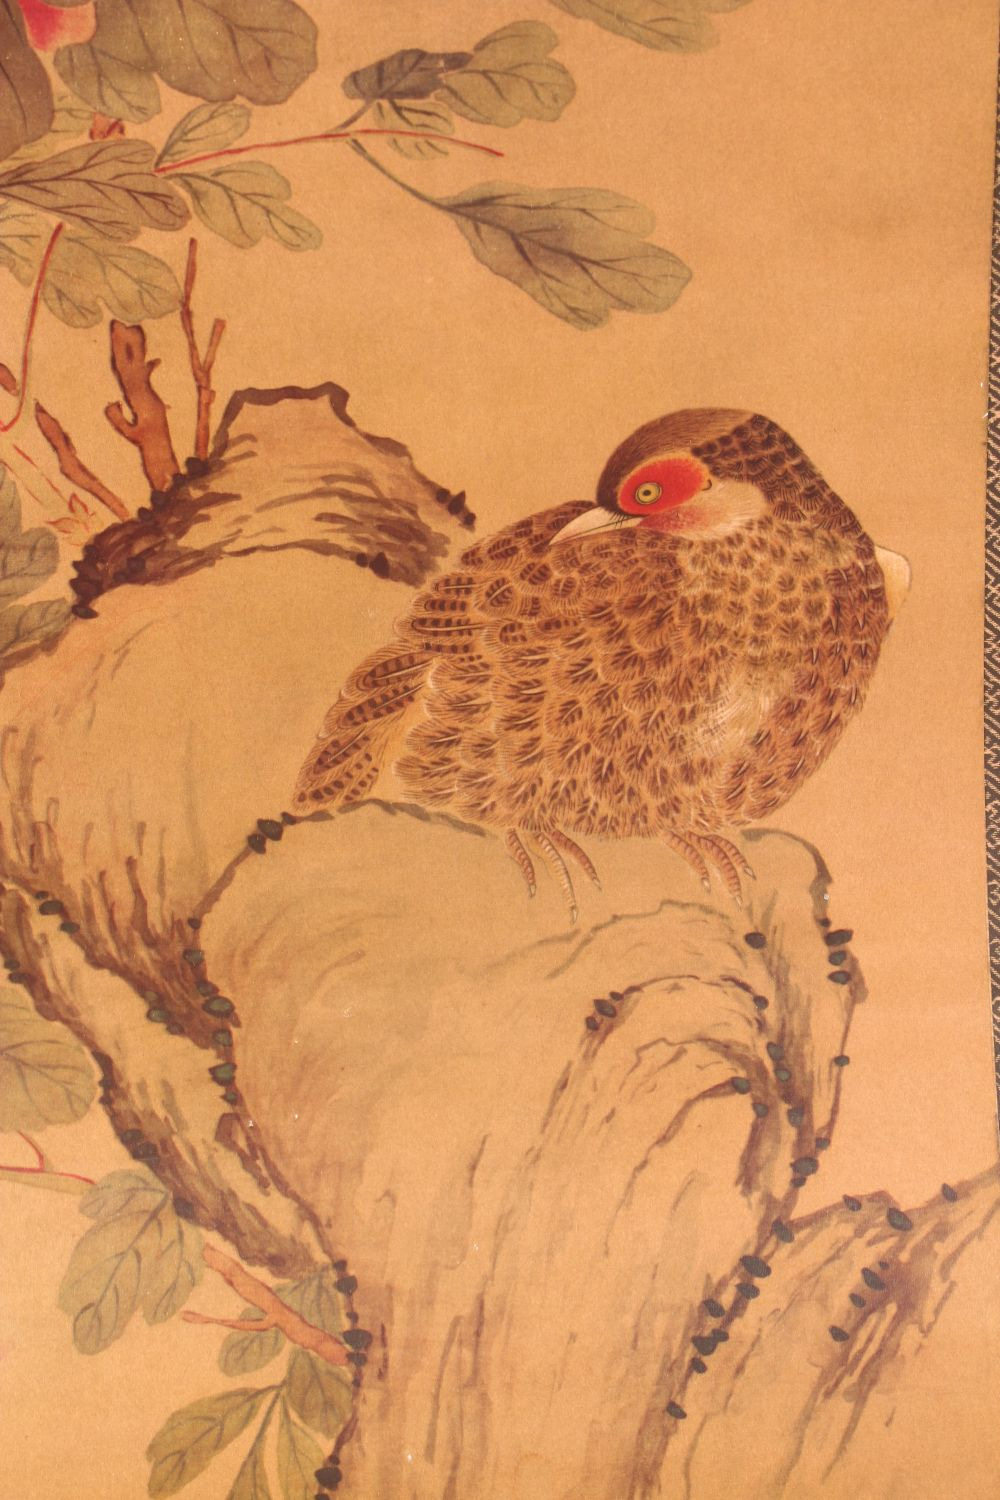 A 20TH CENTURY CHINESE PRINTED HANGING SCROLL PICTURE, depicting pheasants and other birds, 150cm - Image 3 of 4